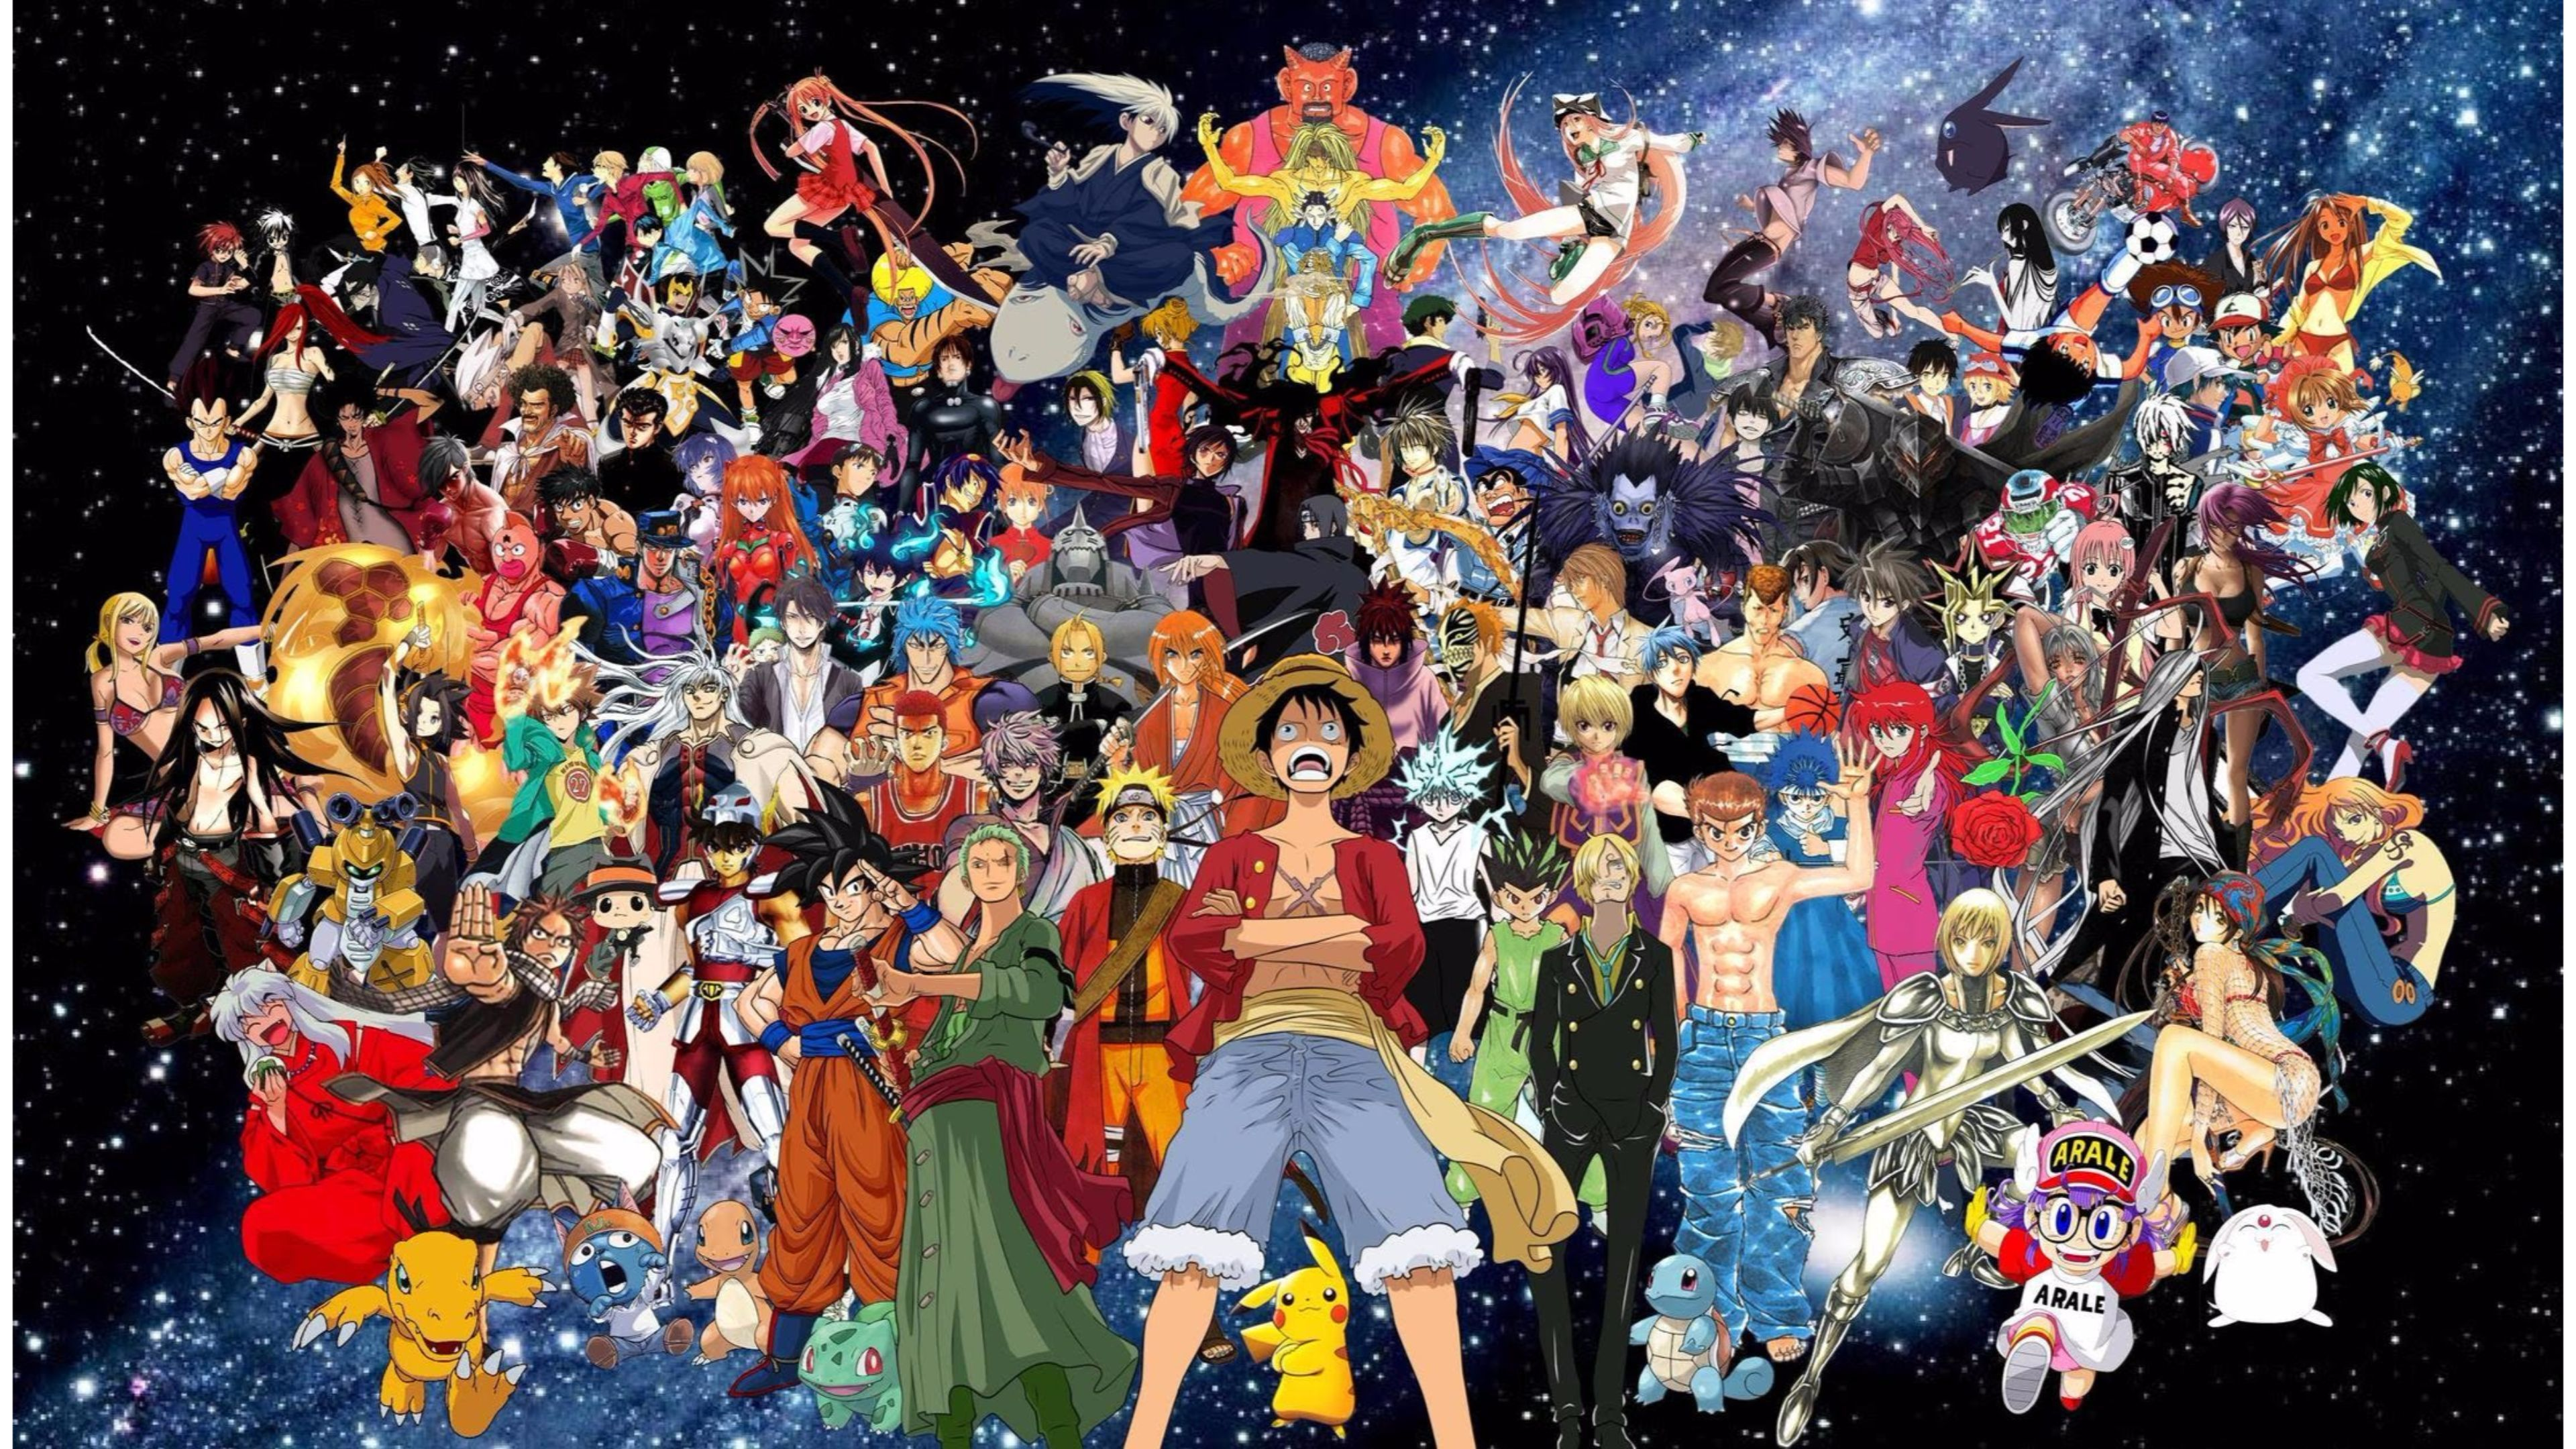 Anime Collage Wallpapers   Top Anime Collage Backgrounds 3840x2160